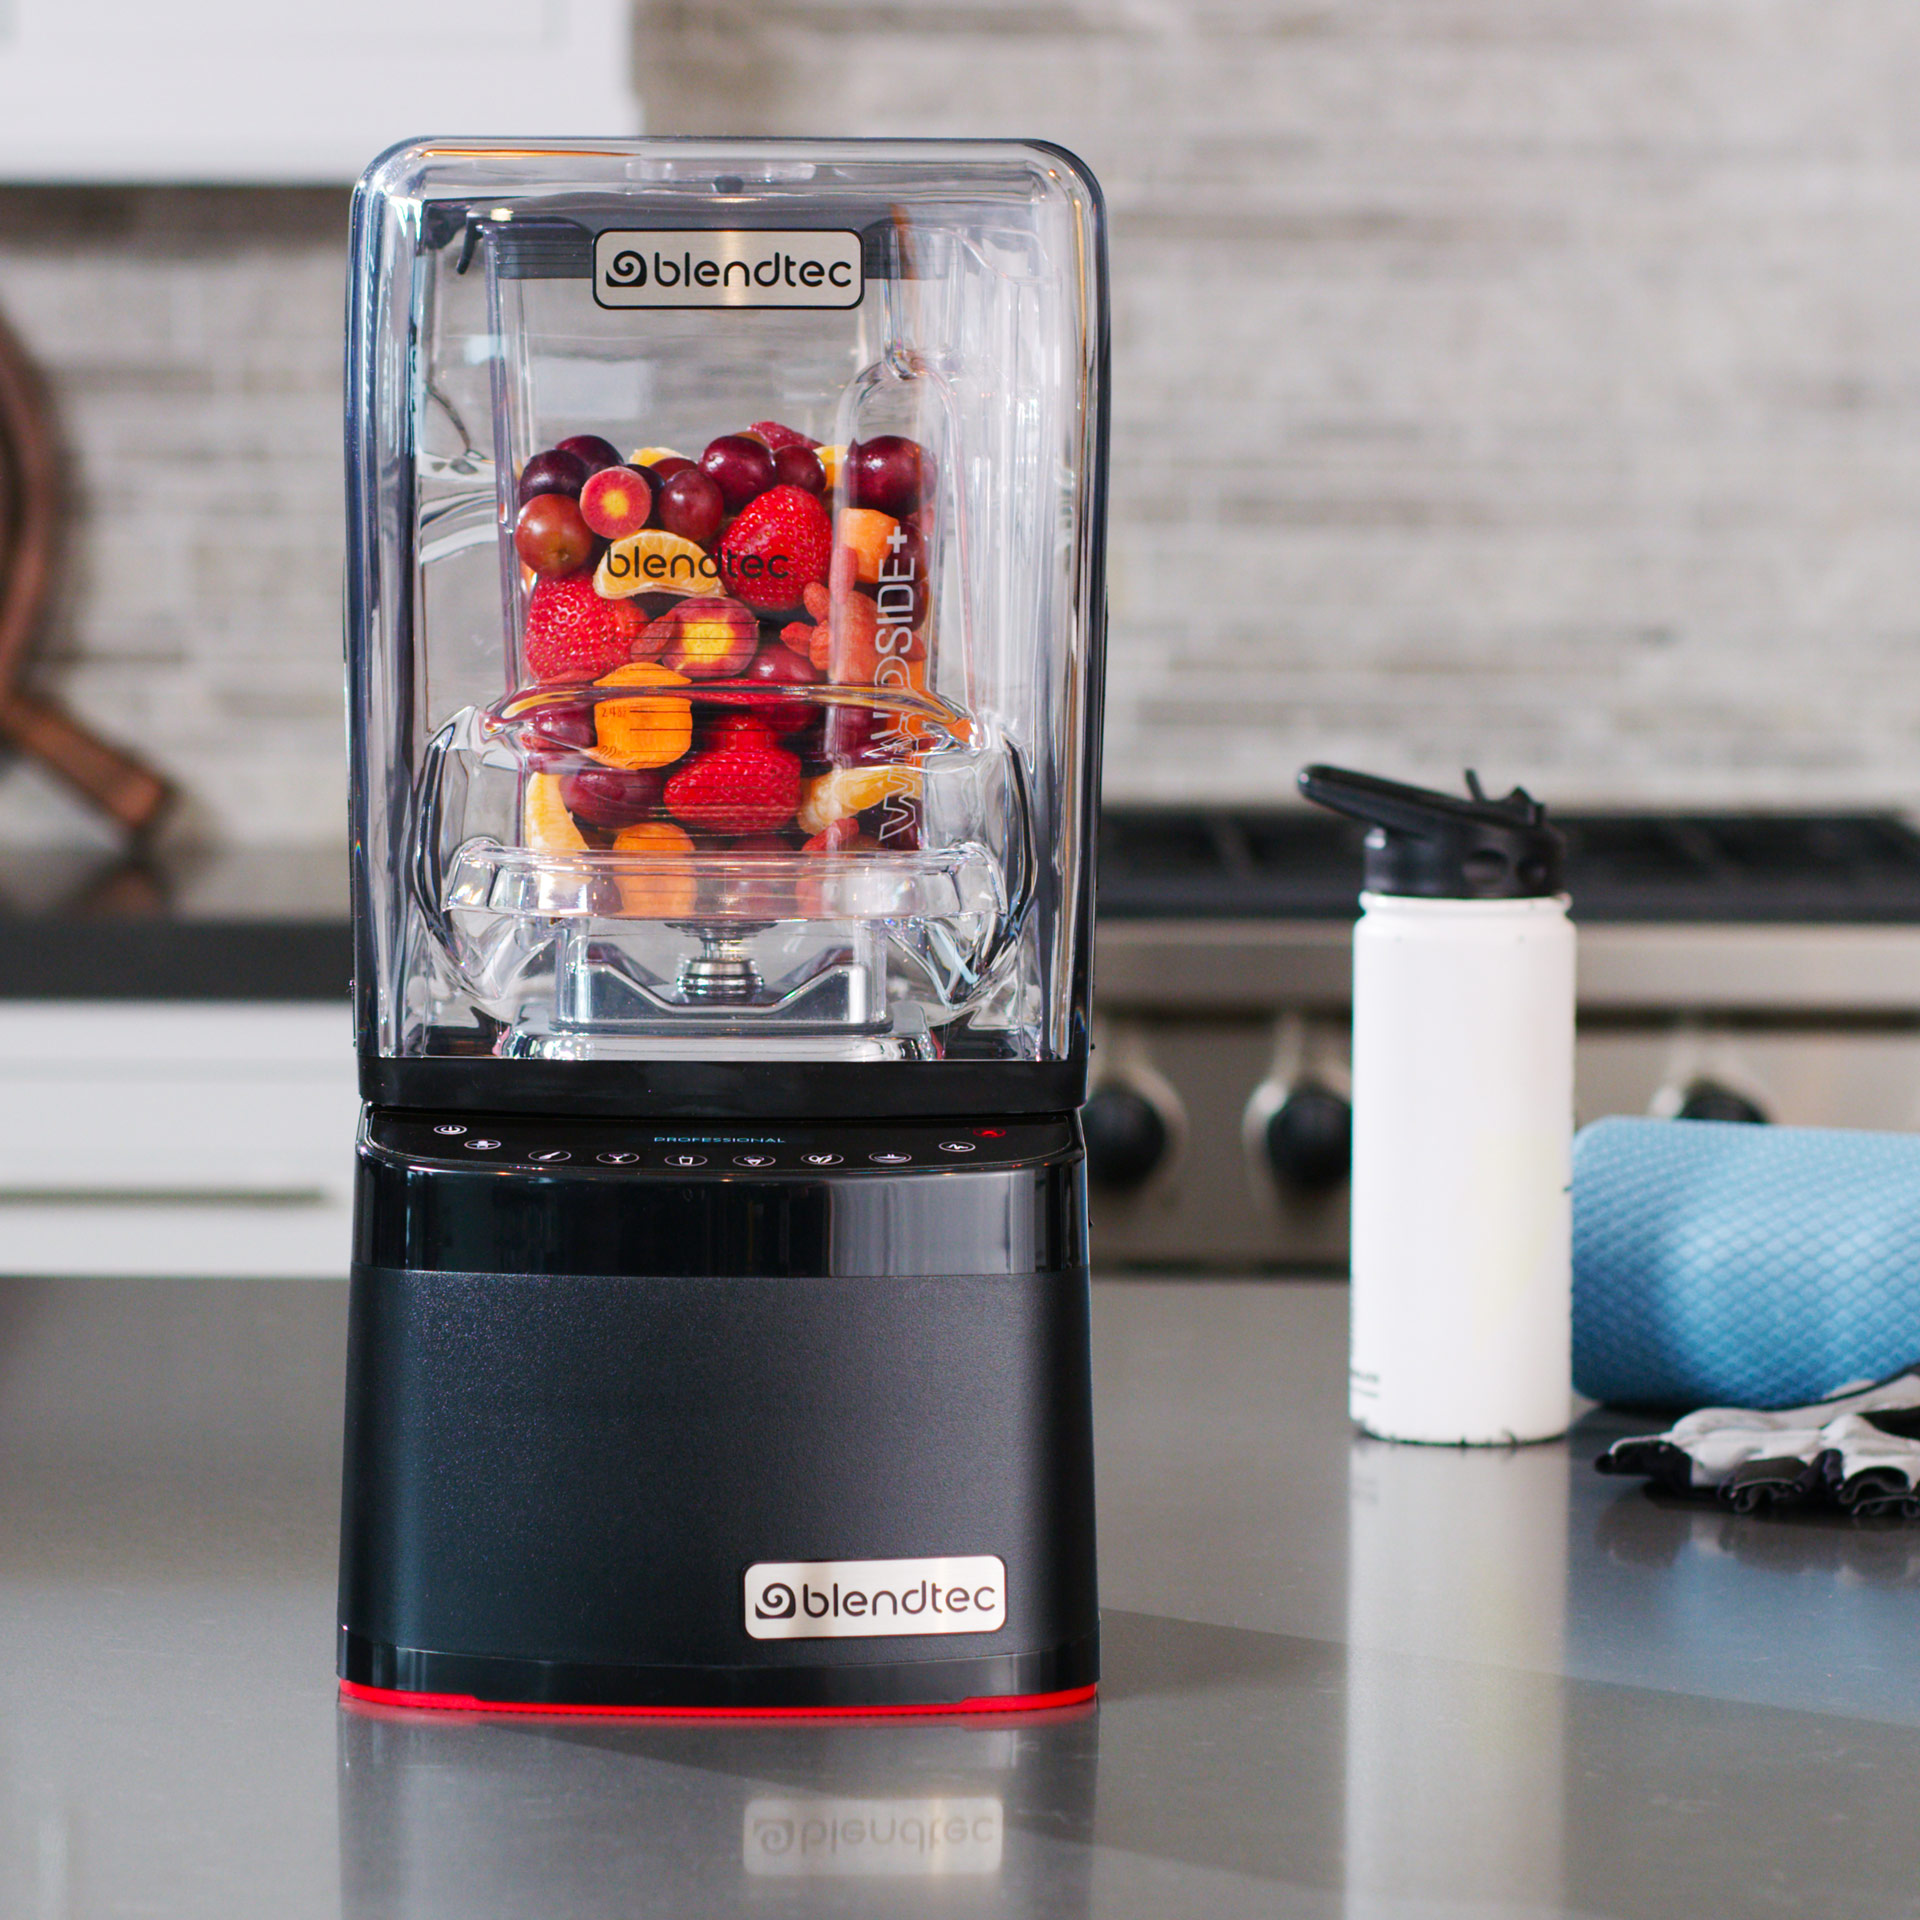 Blendtec Professional 800 in Kueche befuellt